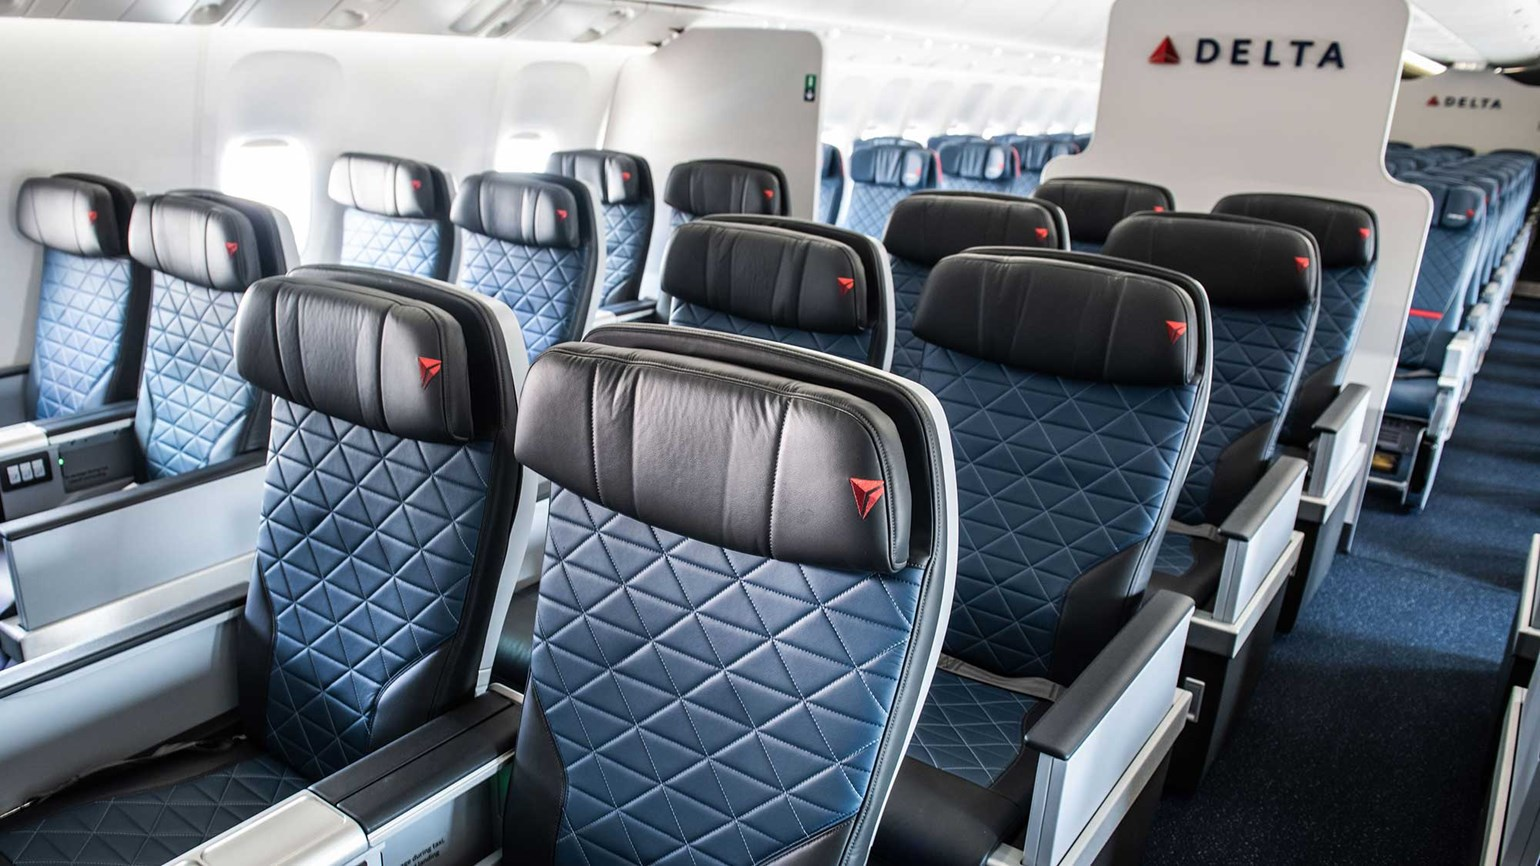 Delta upgrading Boeing 767 and Airbus A330 fleets